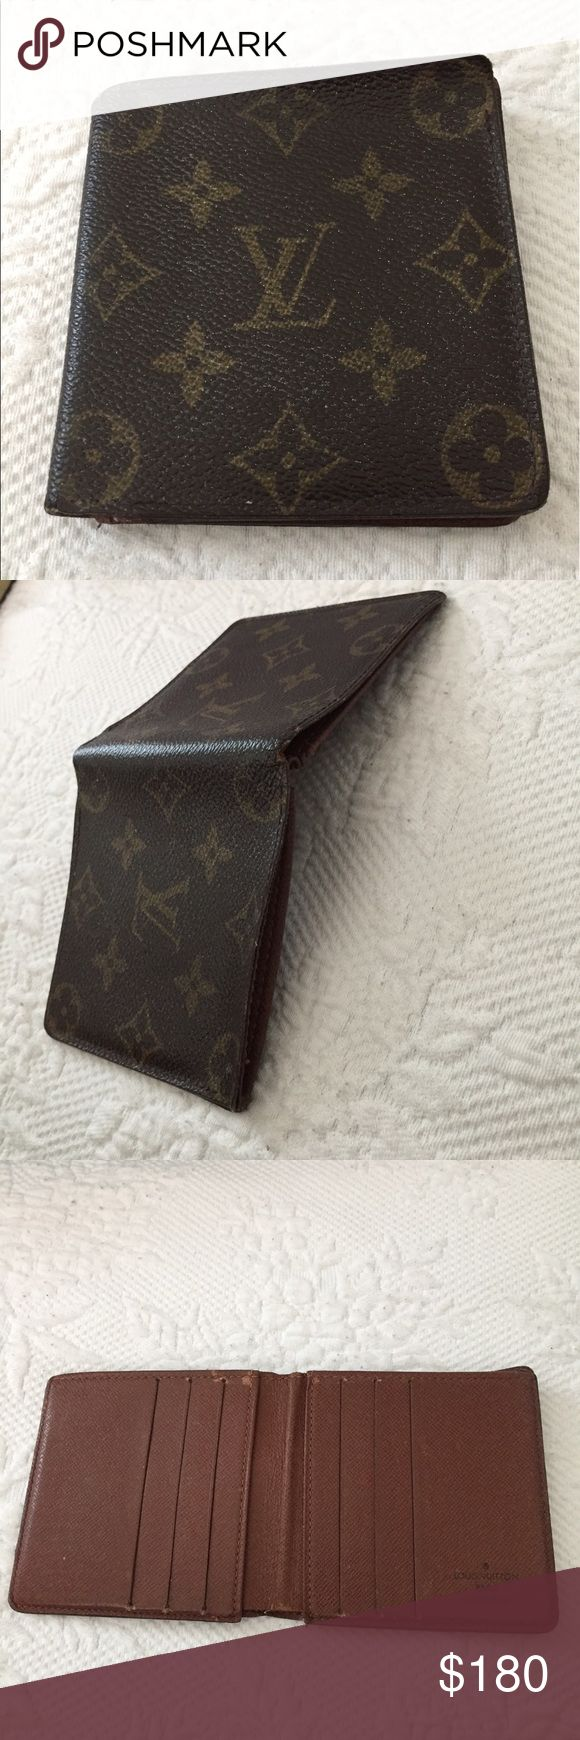 AUTHENTIC LOUIS VUITTON MENS WALLET. CODE: ca0015 Used as you can see pictures,but still useable. Louis Vuitton Accessories